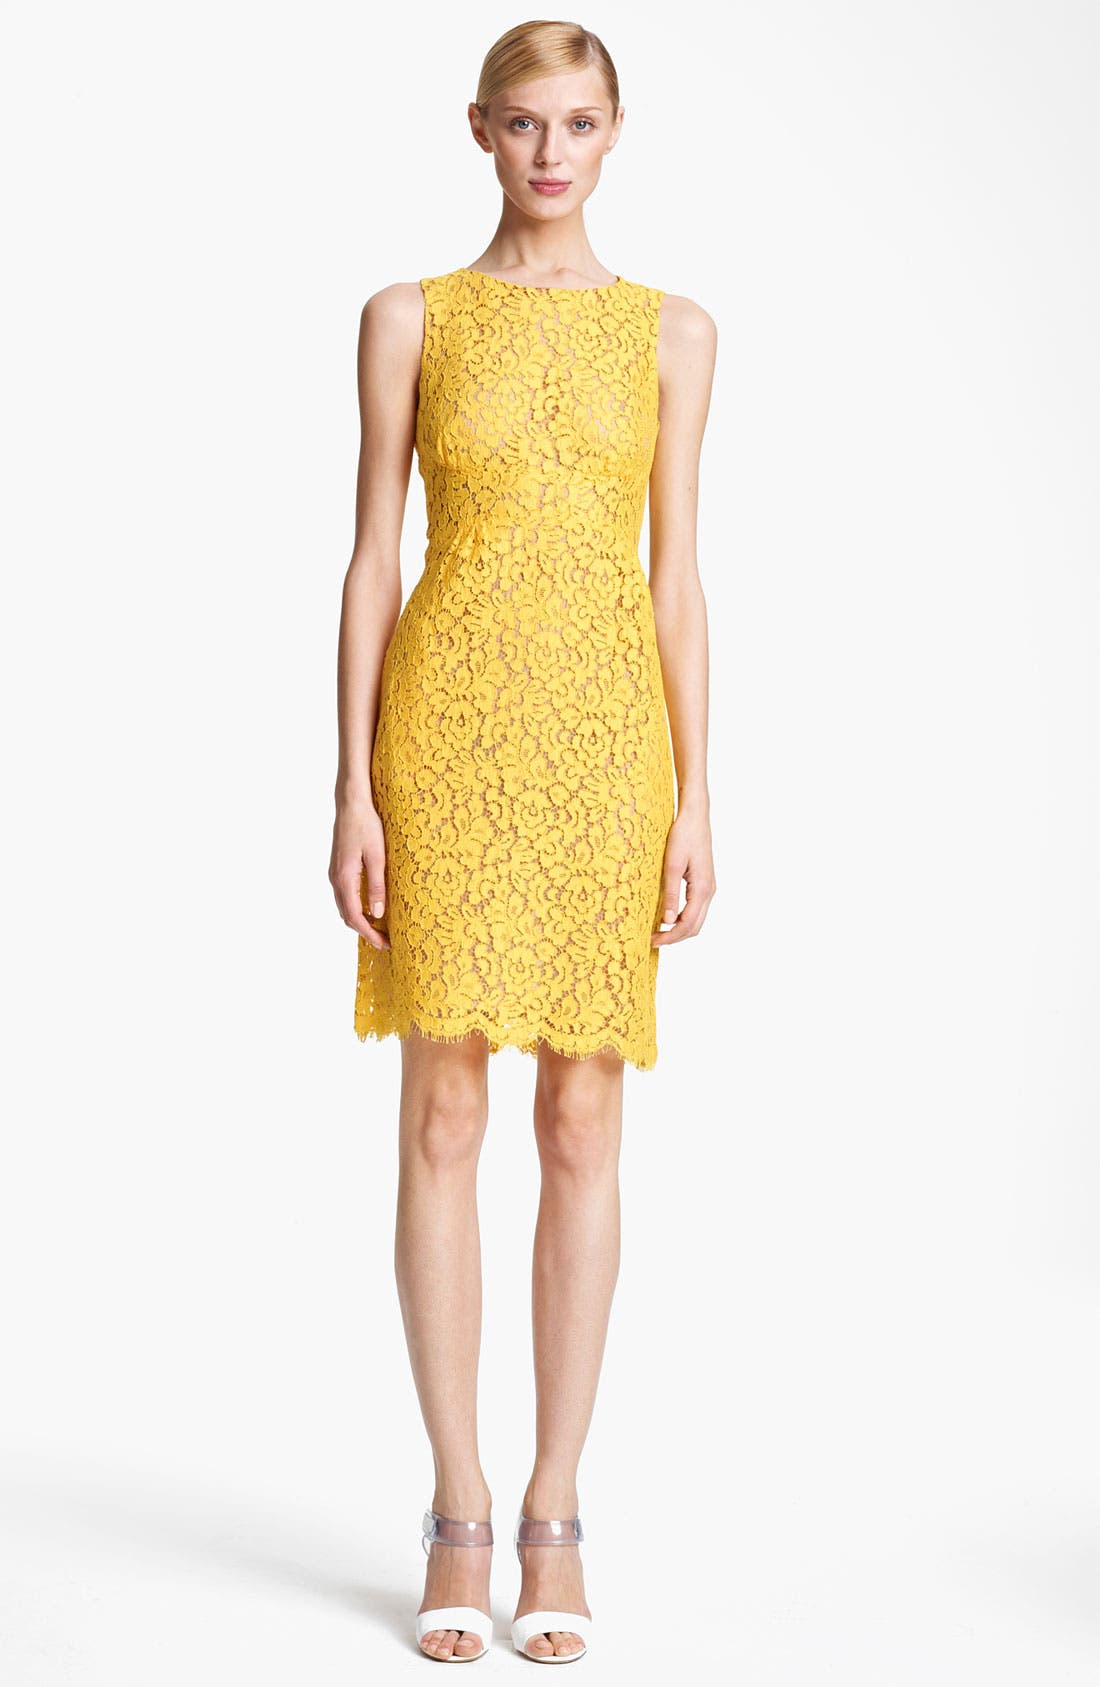 Main Image - Michael Kors Floral Lace Shift Dress